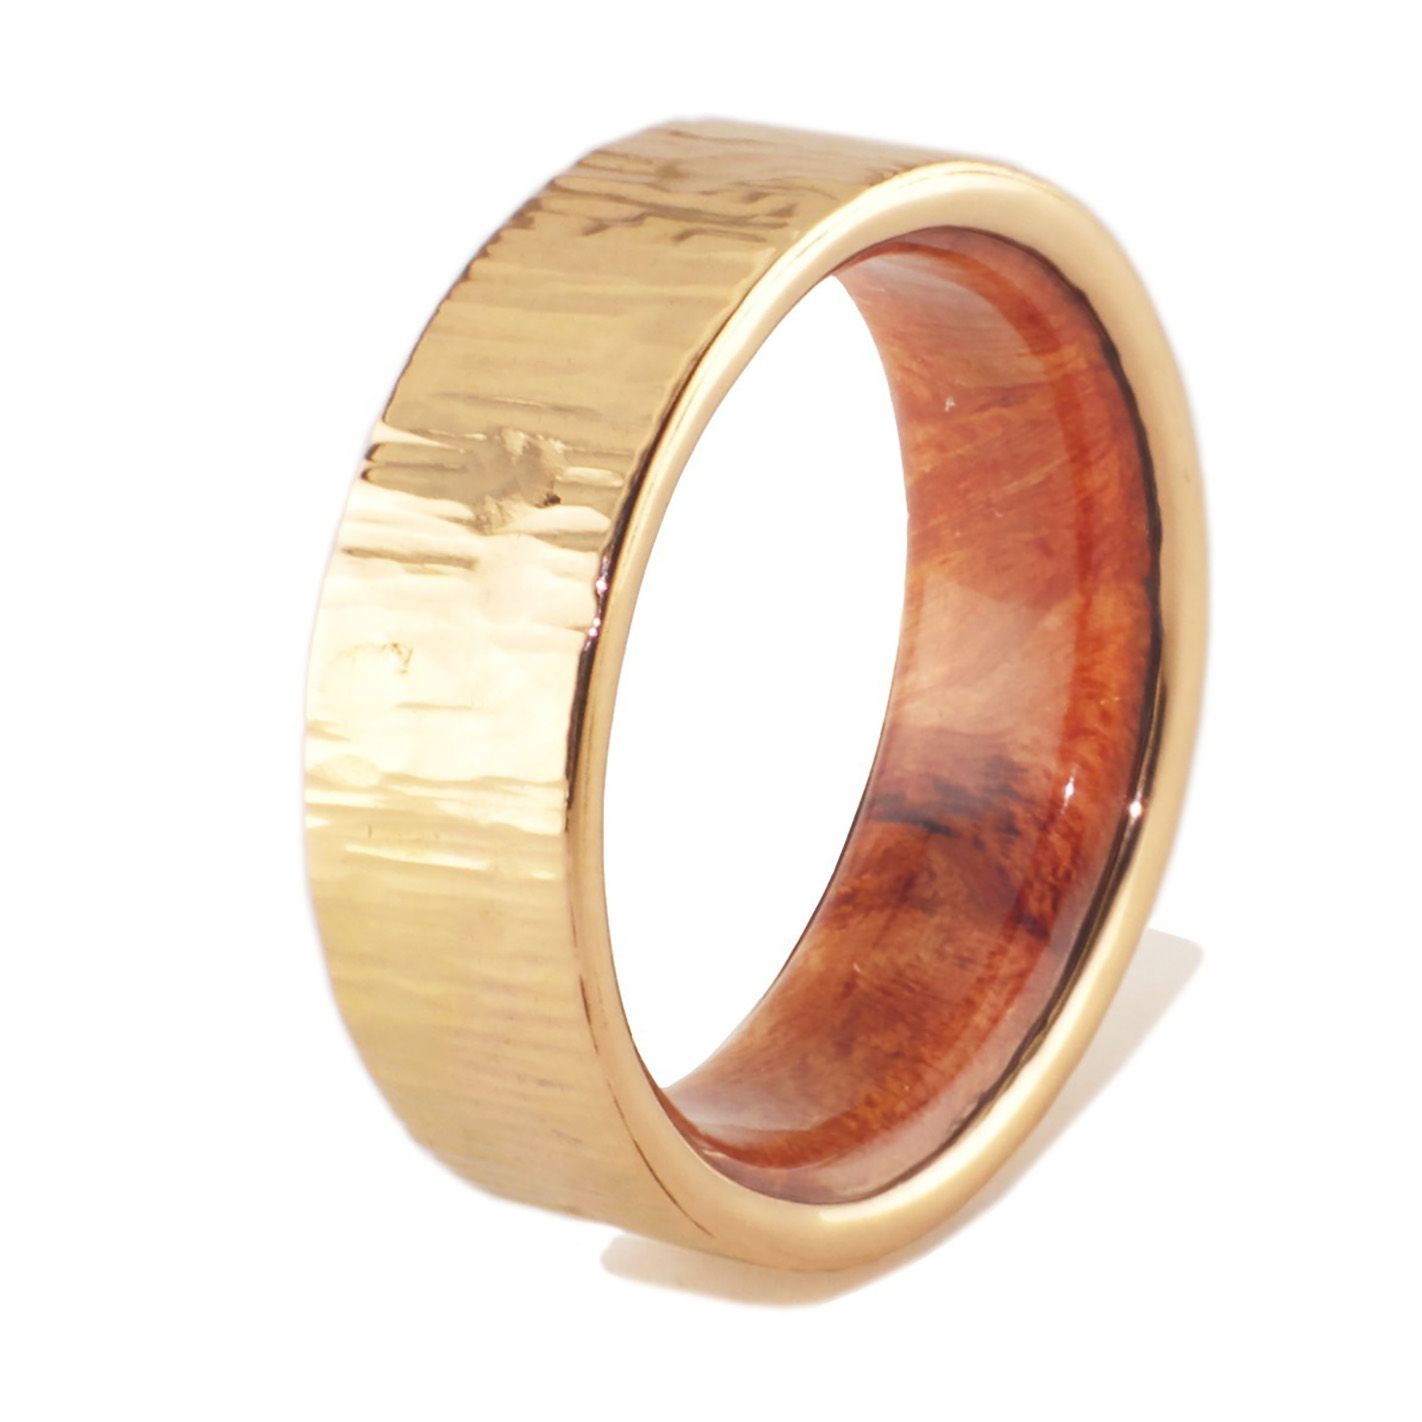 Gold Wedding Band Viademonte Jewelry Designe Woods Rings Unisex